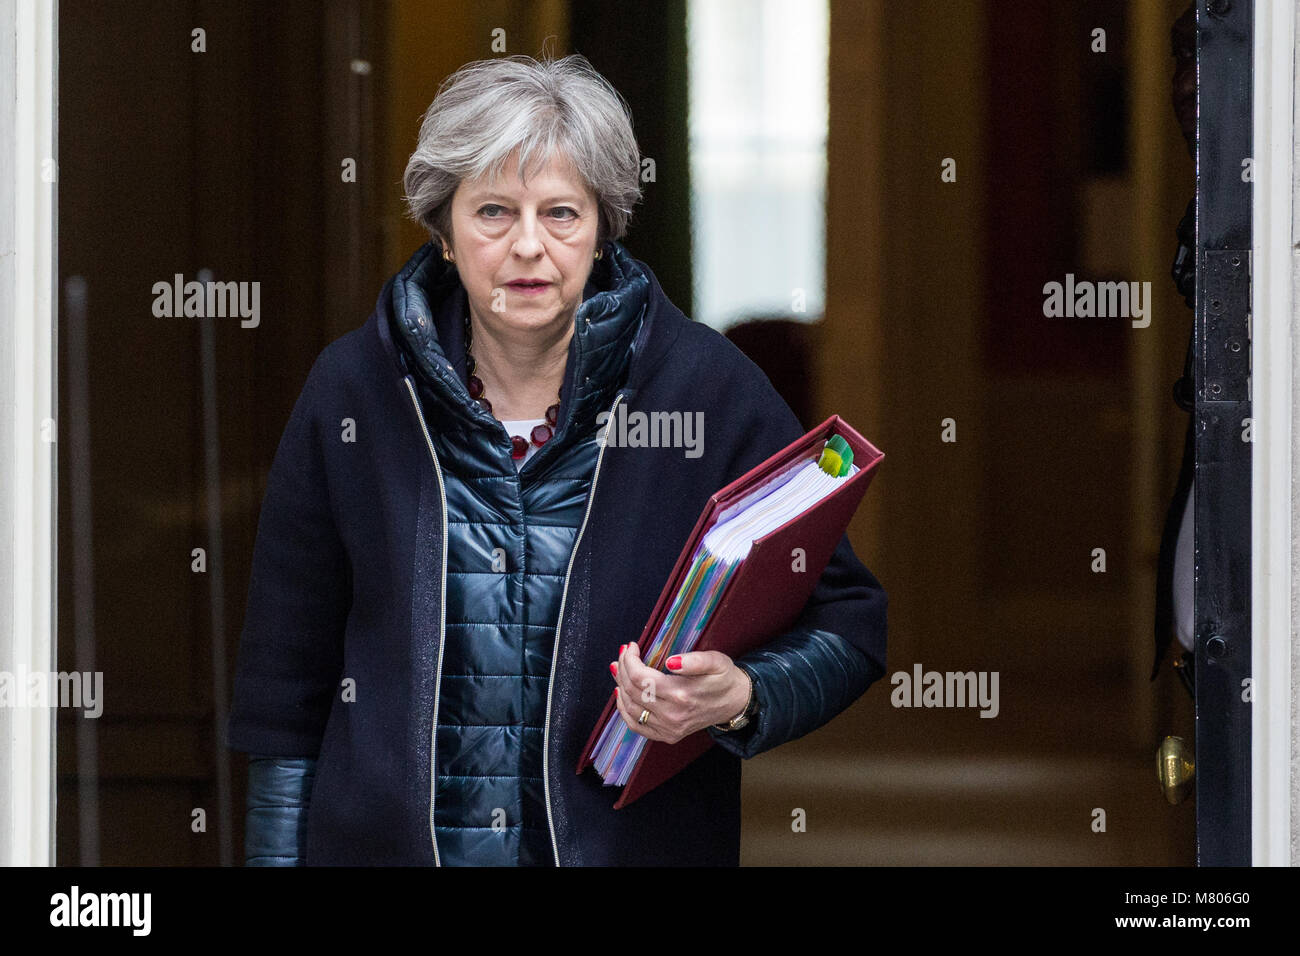 London, UK. 14th March, 2018. Prime Minister Theresa May leaves 10 Downing Street to attend Prime Minister's - Stock Image